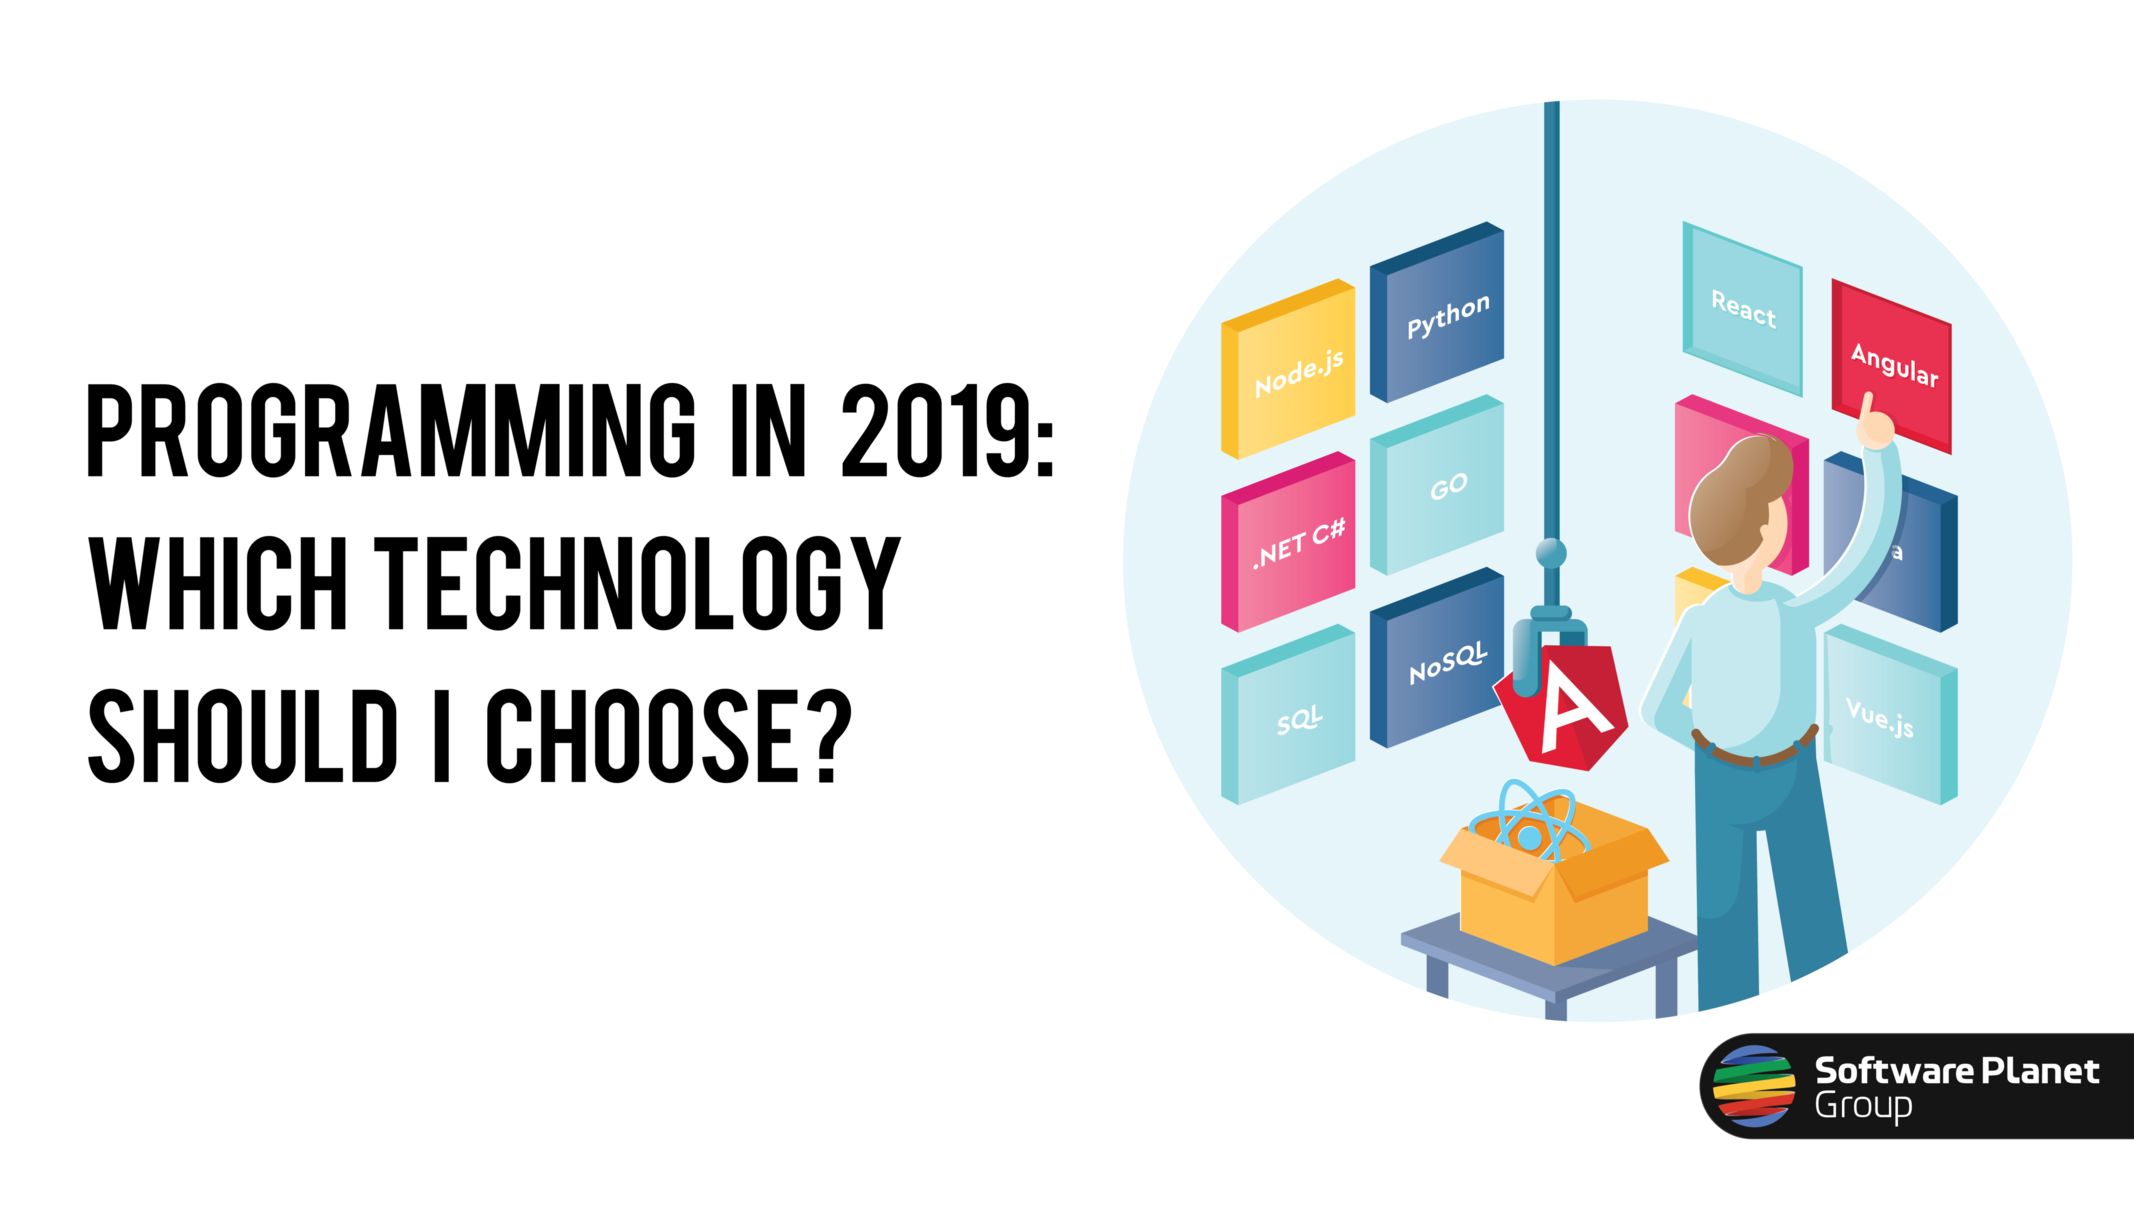 Programming in 2019: The Latest Trends